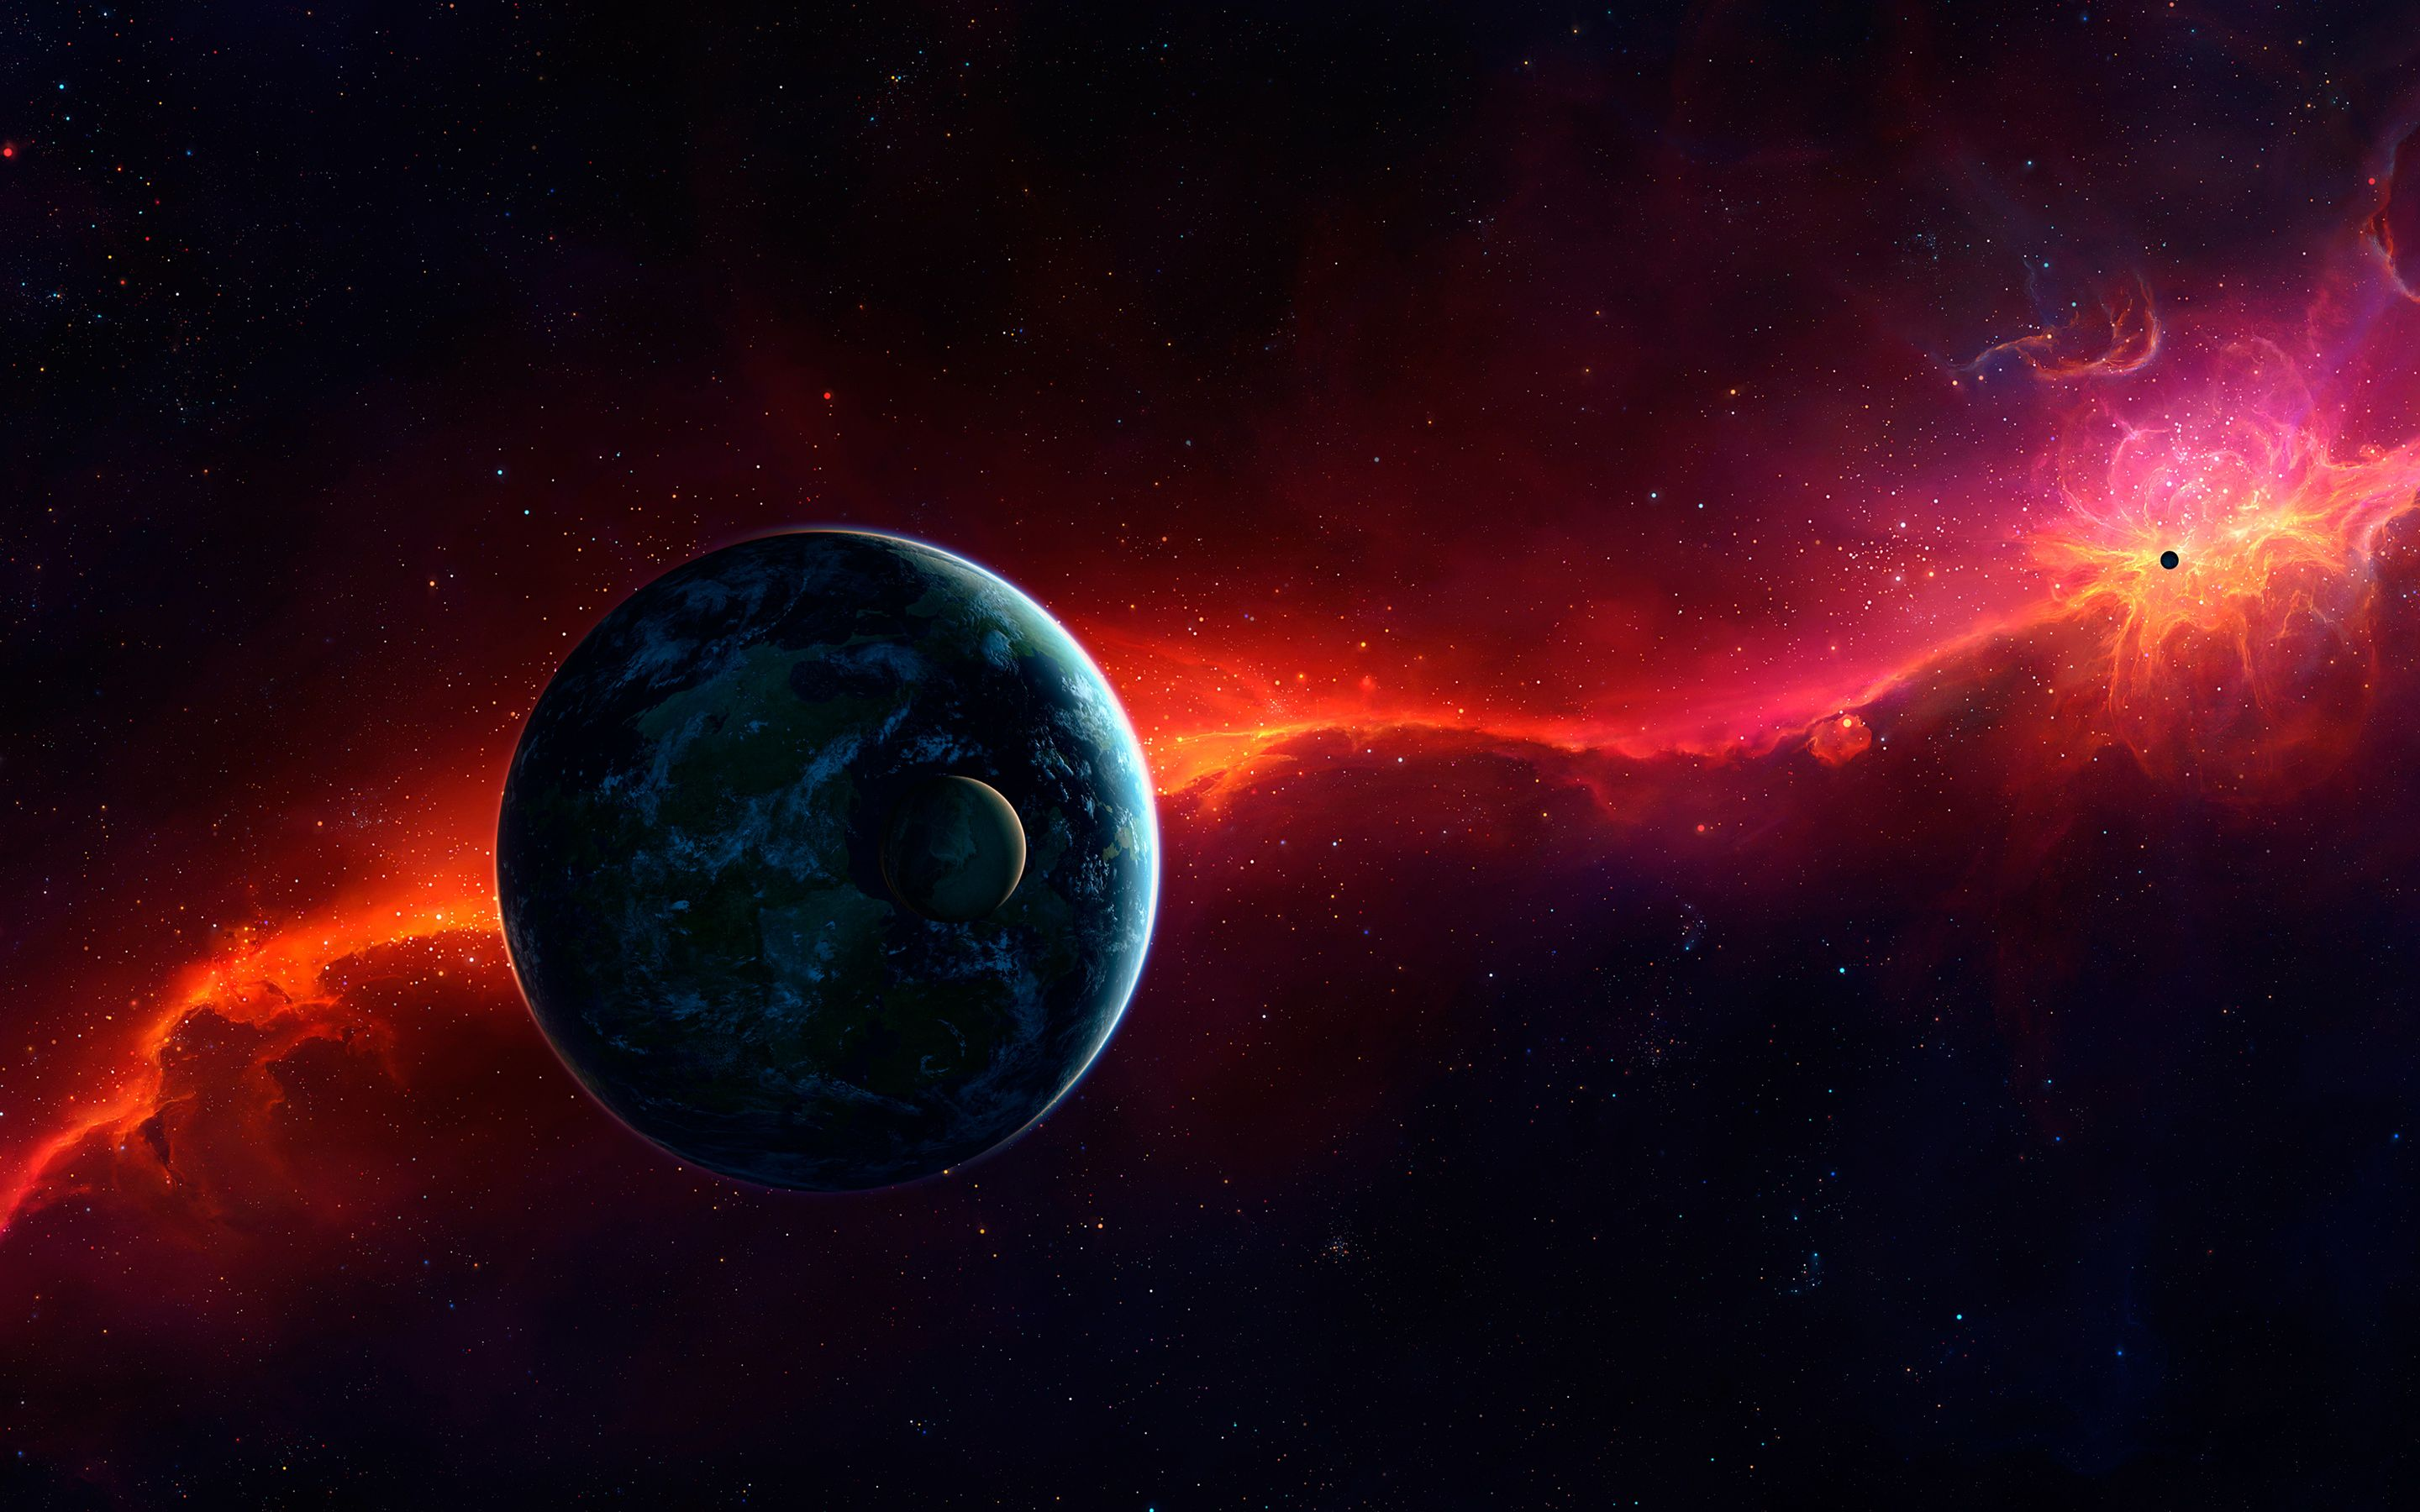 2880x1800 Cosmos Planets 4K Wallpapers   HD Wallpapers   ID #20307